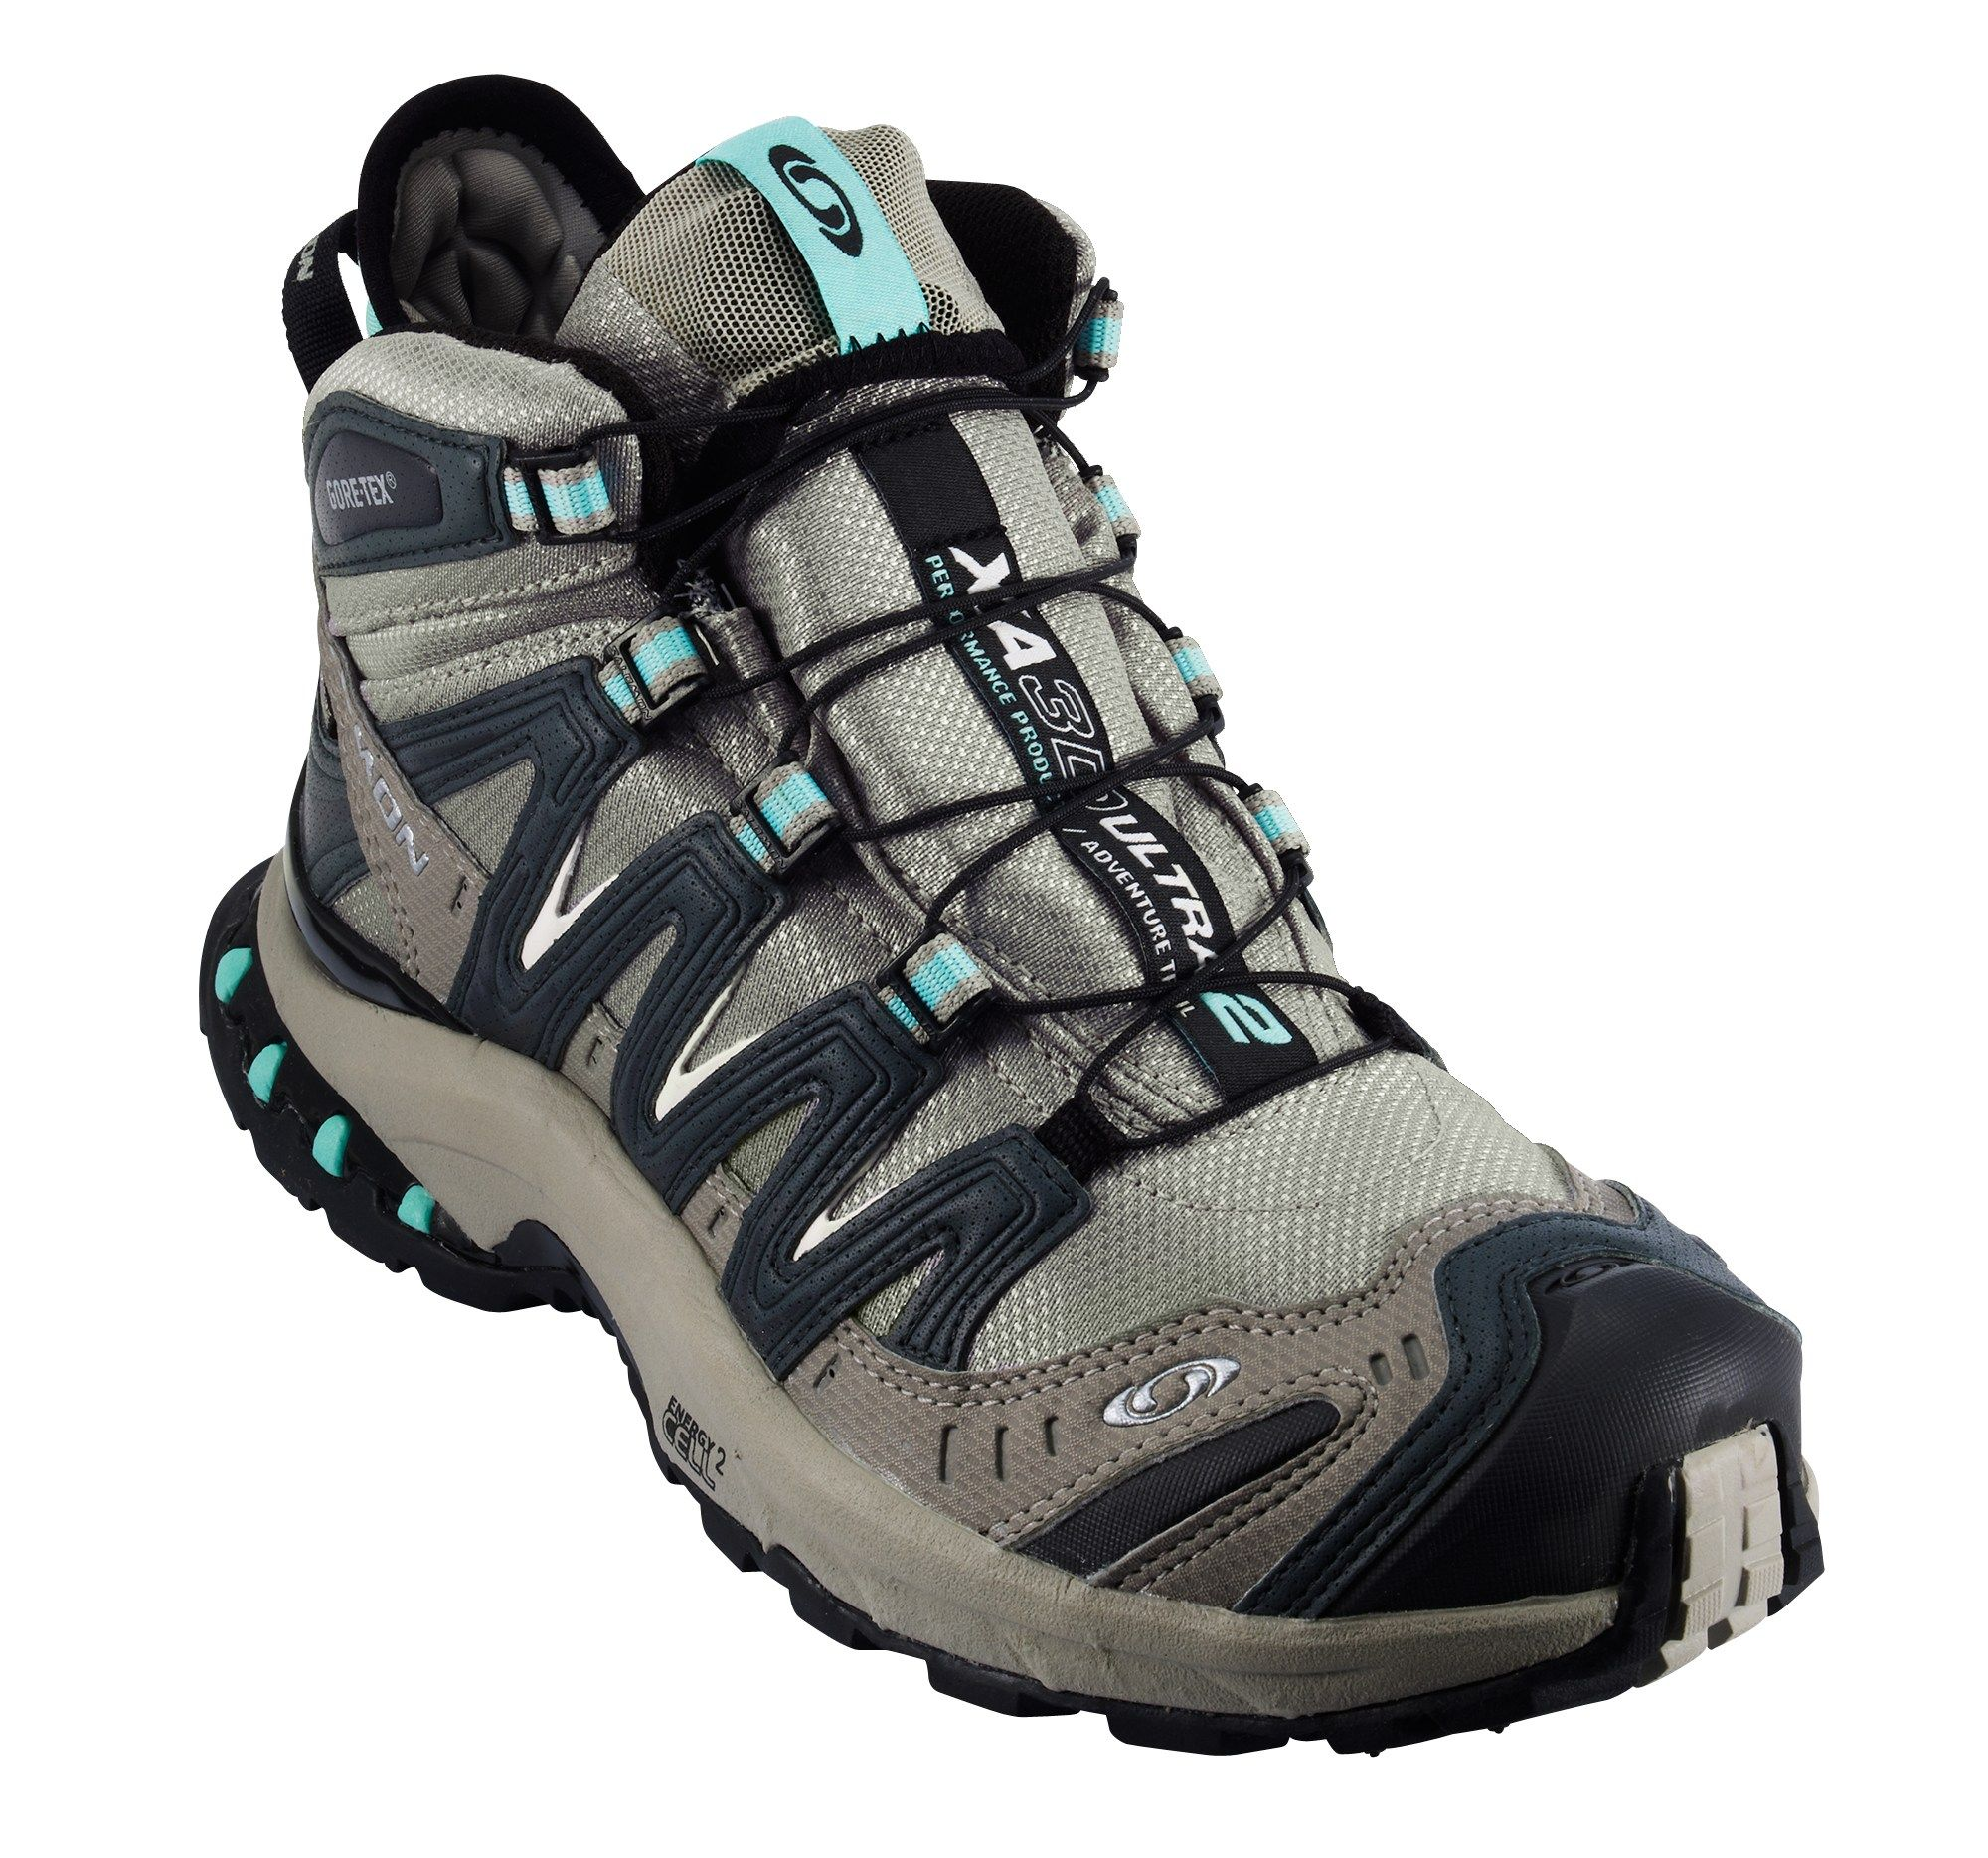 Salomon XA Pro 3D Mid GTX Ultra Men's — CampSaver